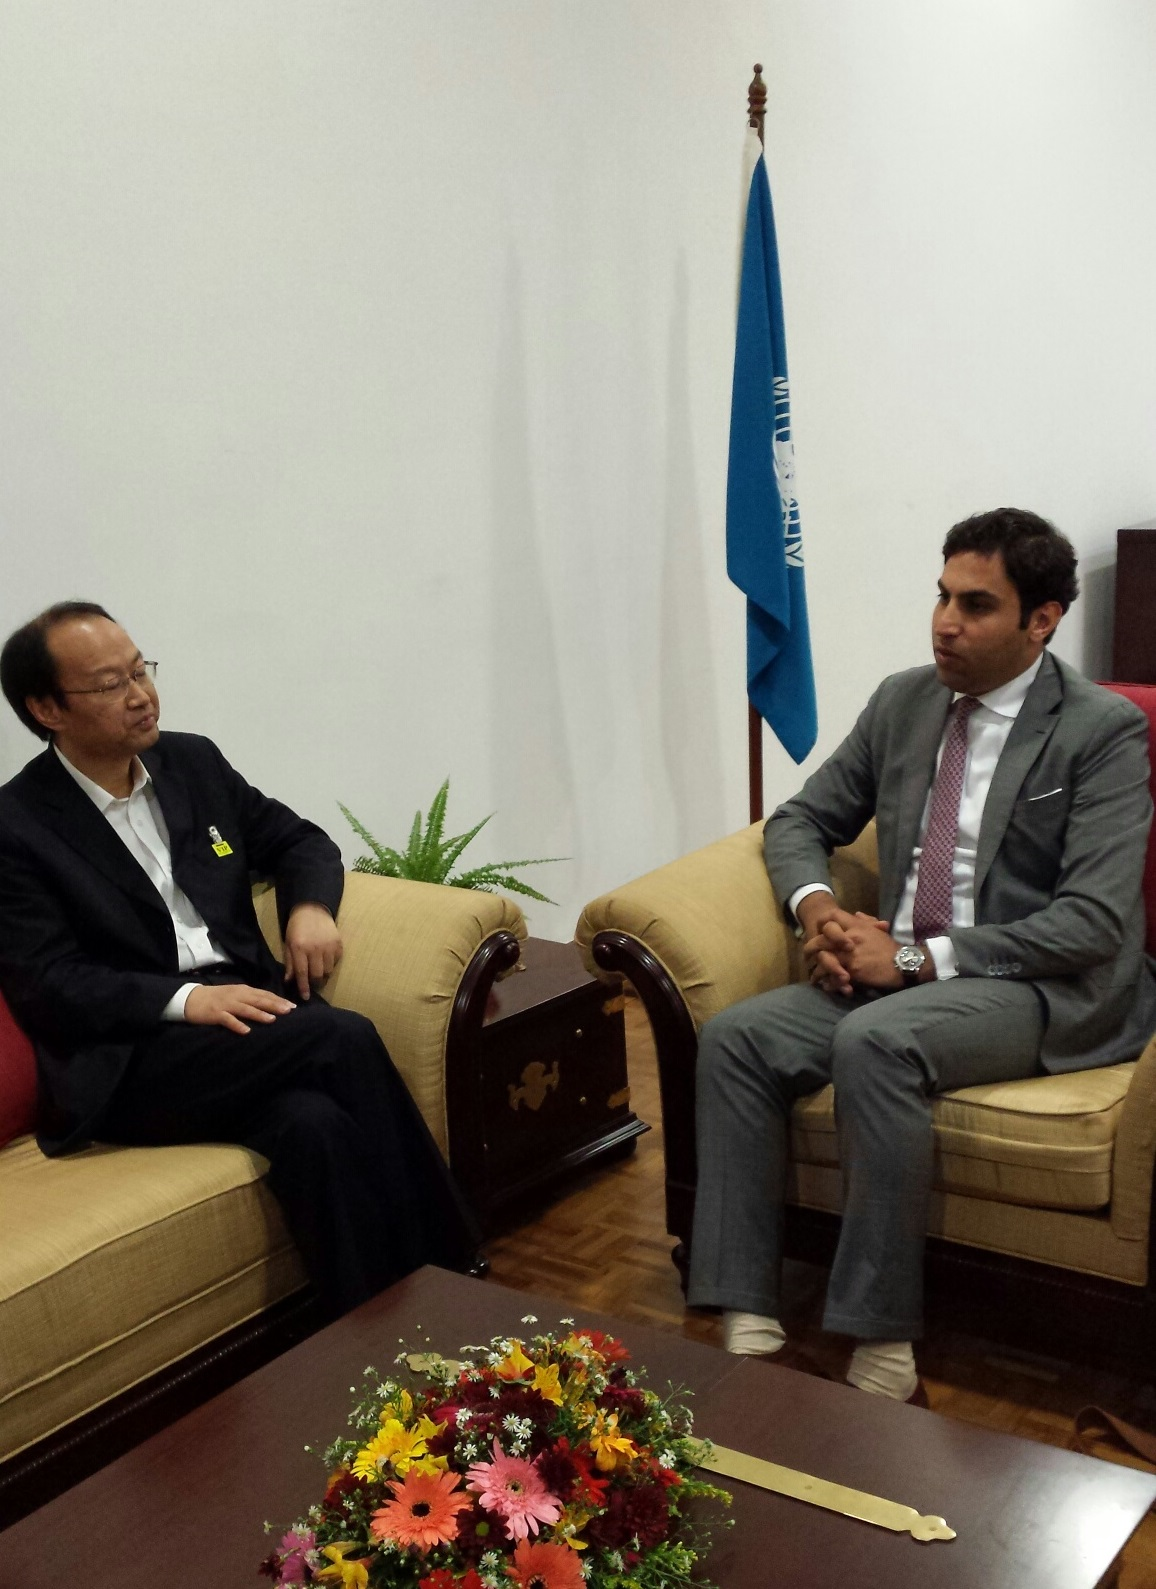 Vice President of All-China Youth Federation, H.E. Changkui Zhou, and Alhendawi.